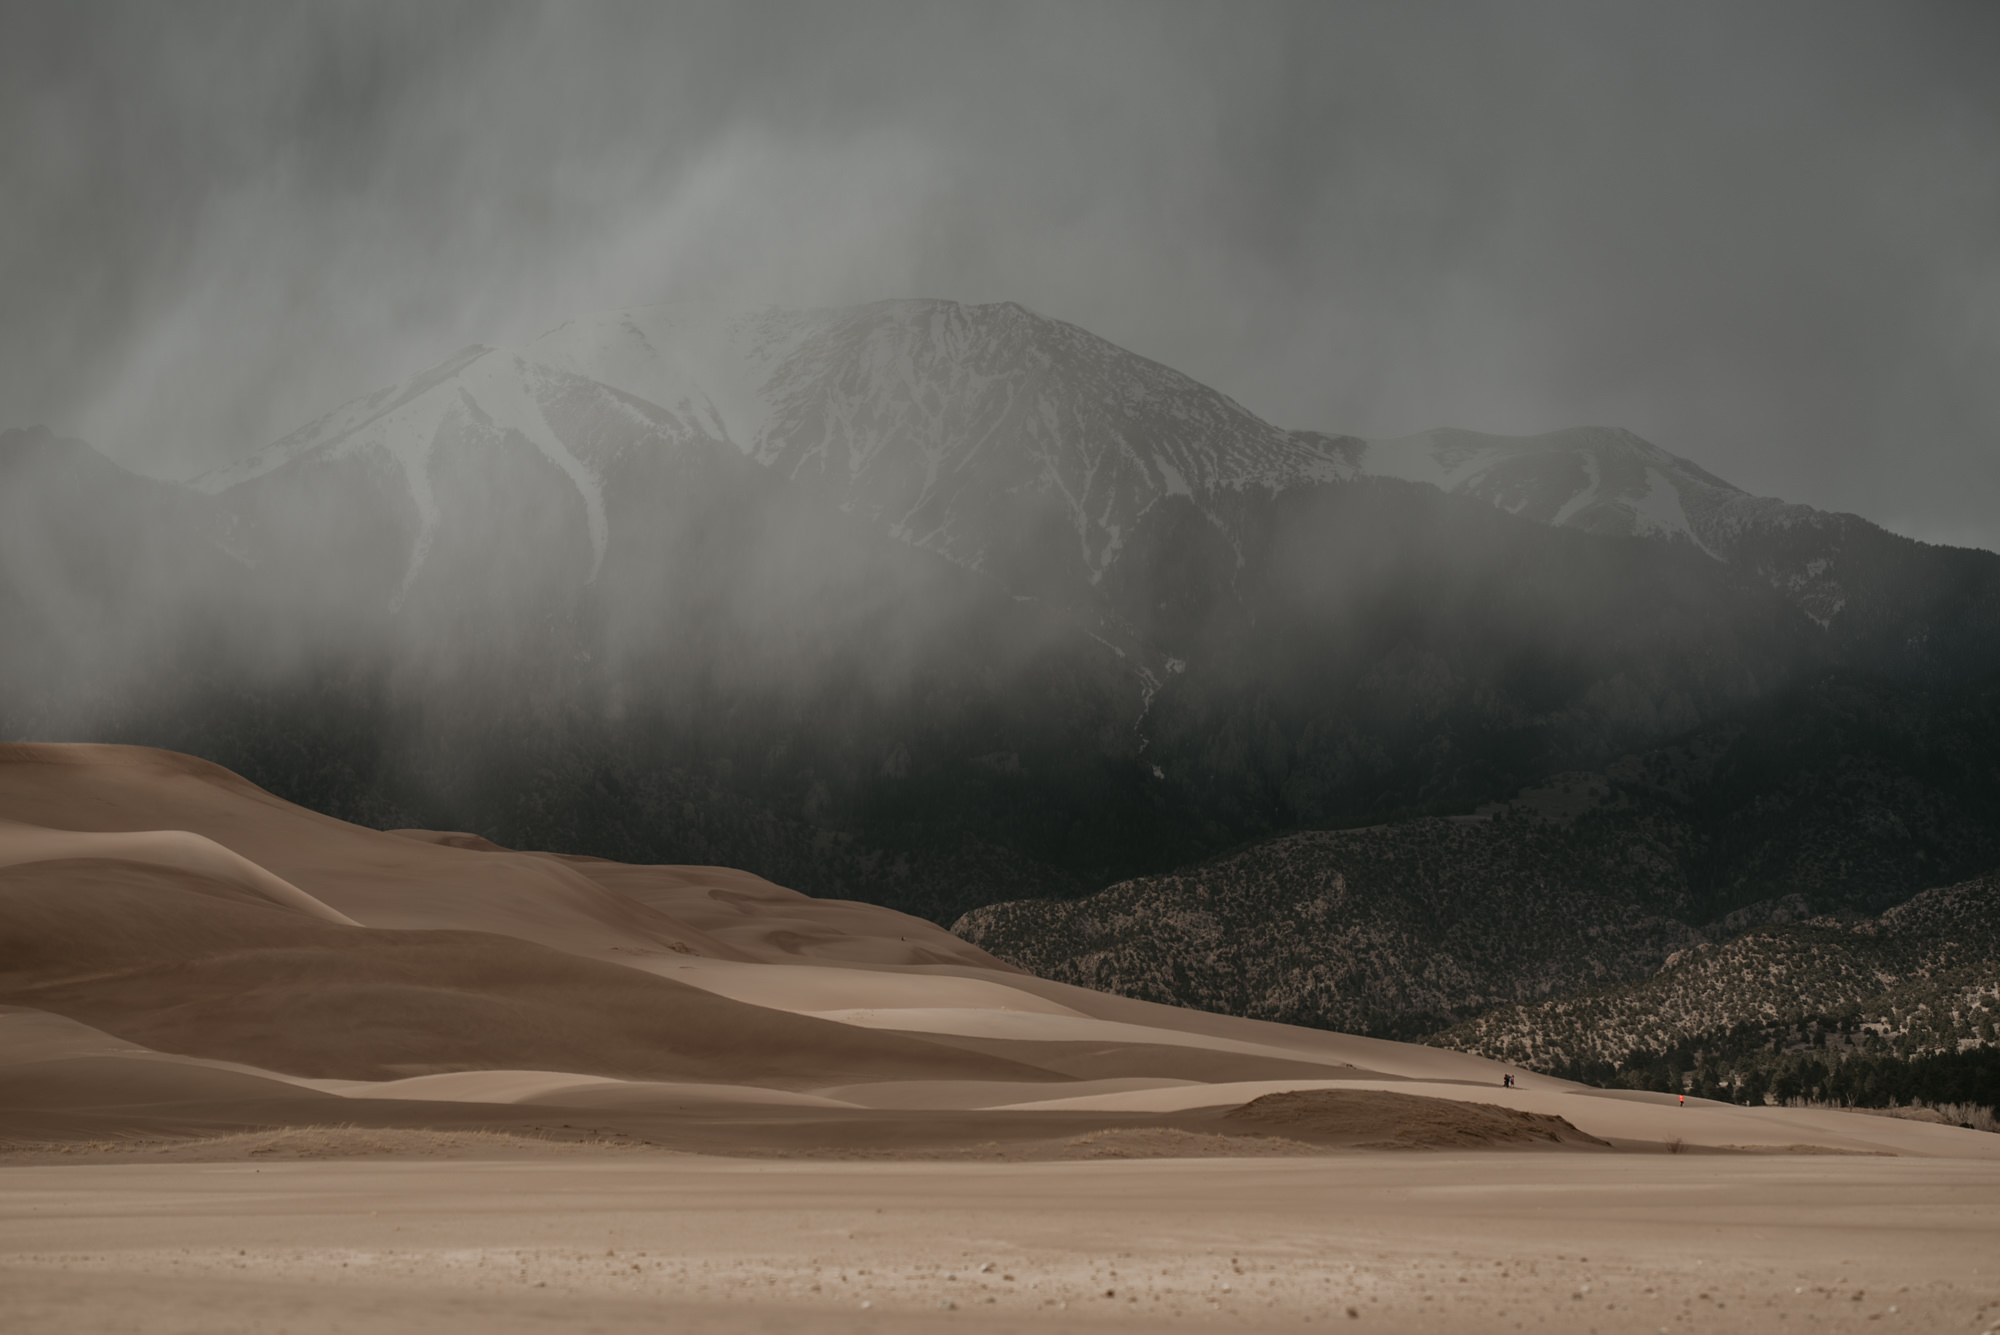 Stormy skies over Great Sand Dunes